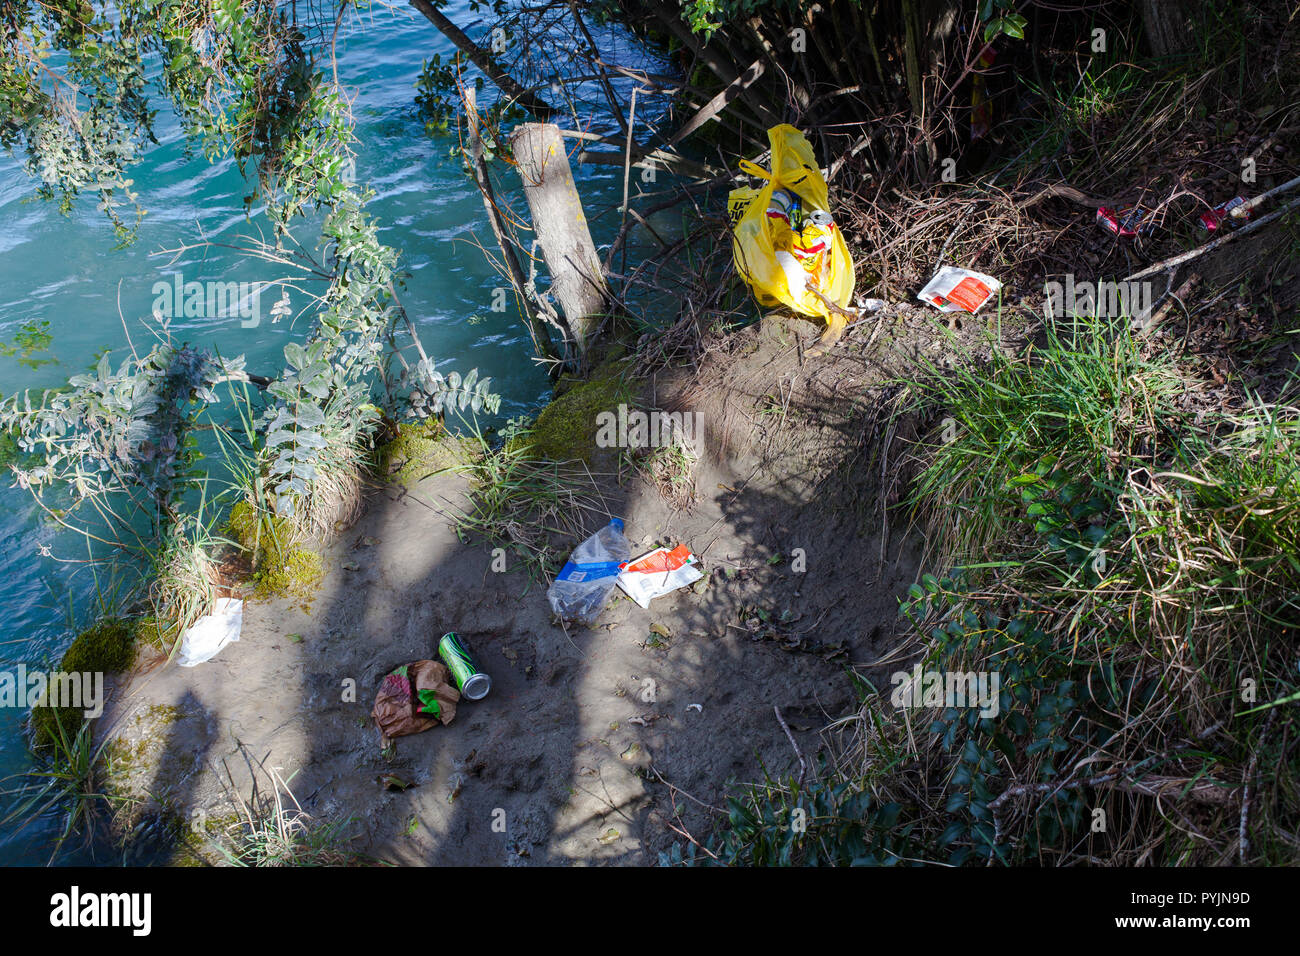 Household Rubbish dumped beside a River. - Stock Image